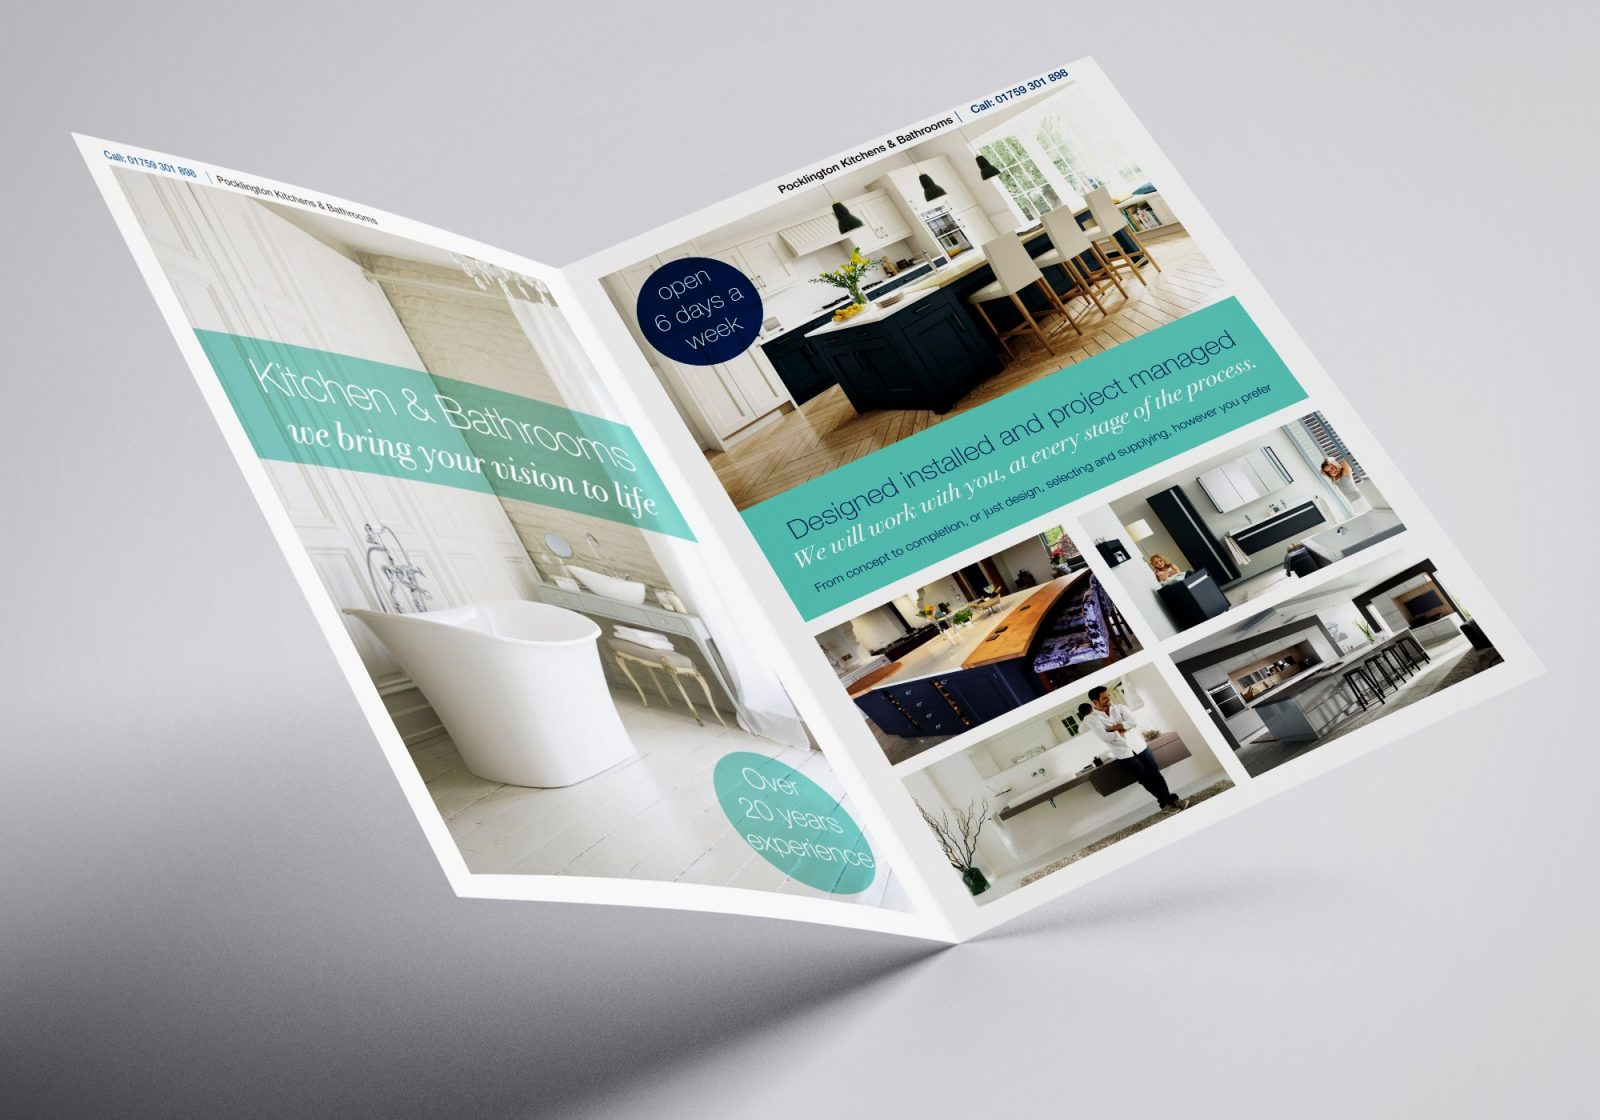 A4 Brochure for Pocklington Bathrooms and Kitchens showing the inside spread showing front and back pages